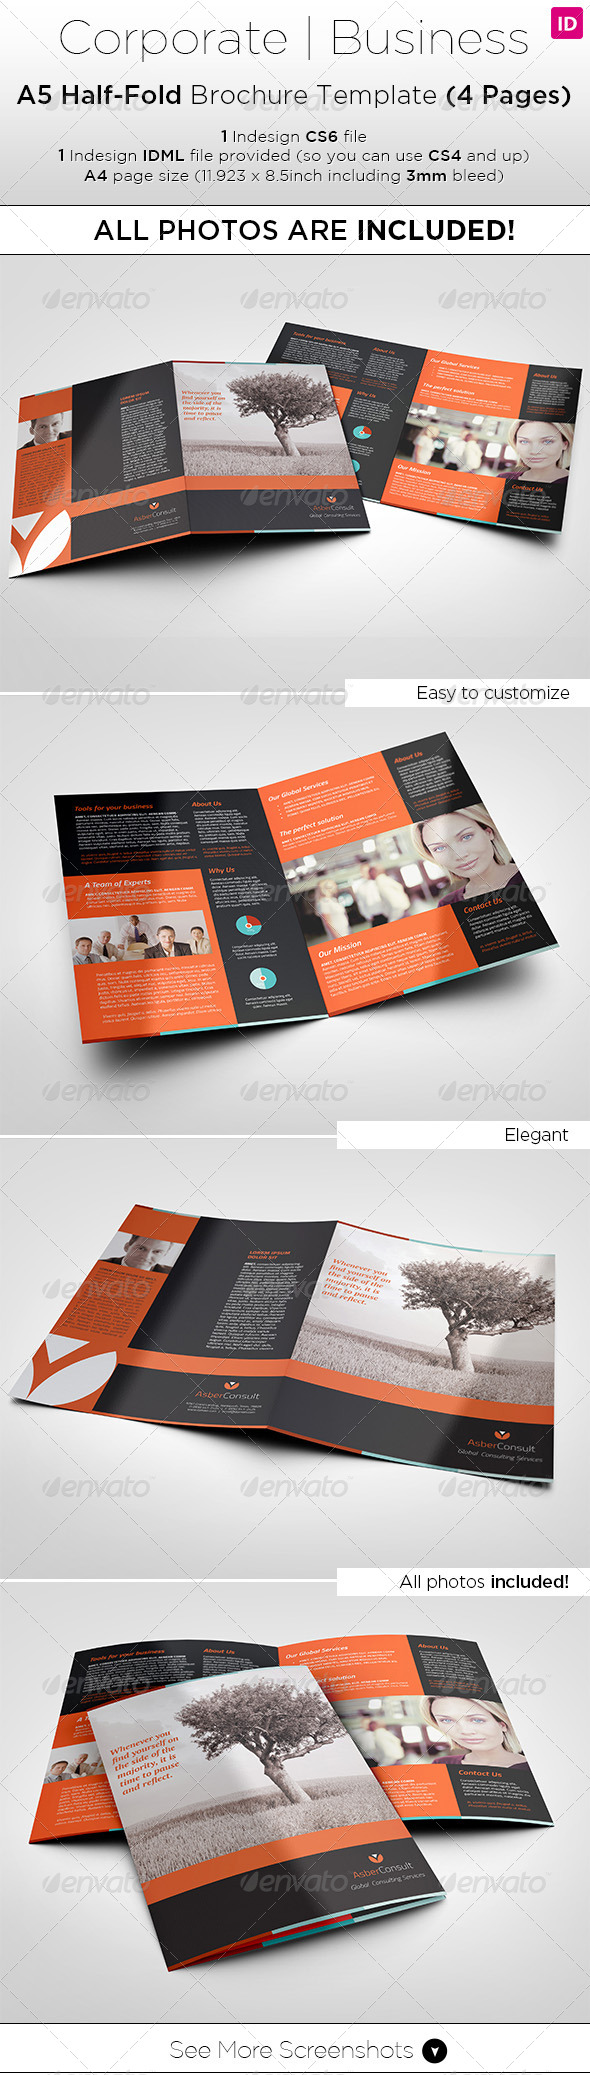 Half Page Flyer Stationery And Design Templates Brochure A5 Custom